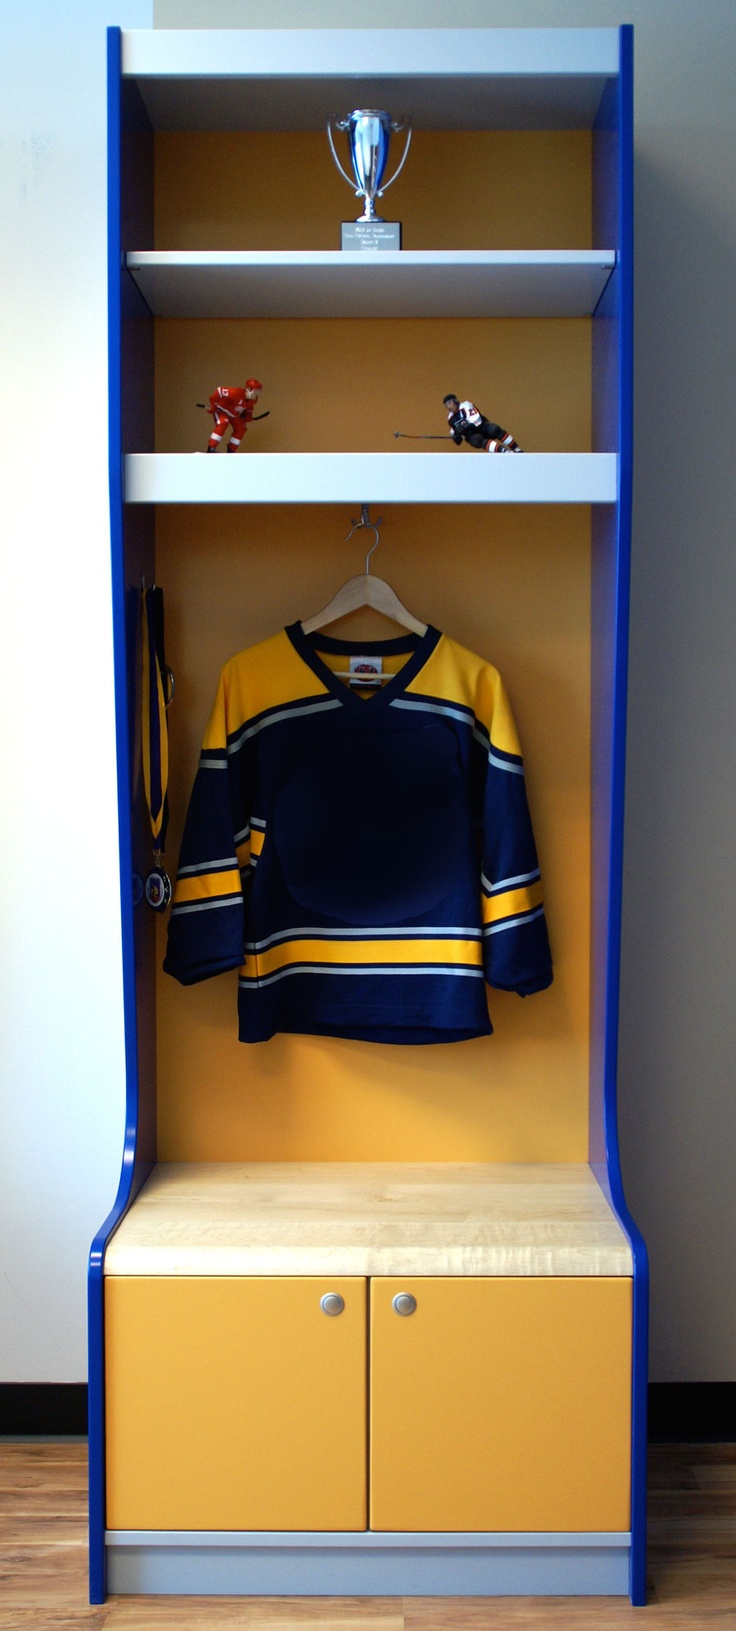 "Sport Locker- Yellow, Grey and Blue     Sport locker for your kids room, game room or garage. Sport Interiors creates high quality sports sport furniture and accessories. We can customize our products with your team's favorite colors! Made in the U.S.A.  Does not include tax or shipping!    Product Attributes:     Base Model:  • Dimensions: 28""x84""x22""  • Solid Maple Seating Bench  • Doors on Lower Shelf  • Flush Faced Door Handles  • Three Shelves  • Jersey Hooks  • Hardware"